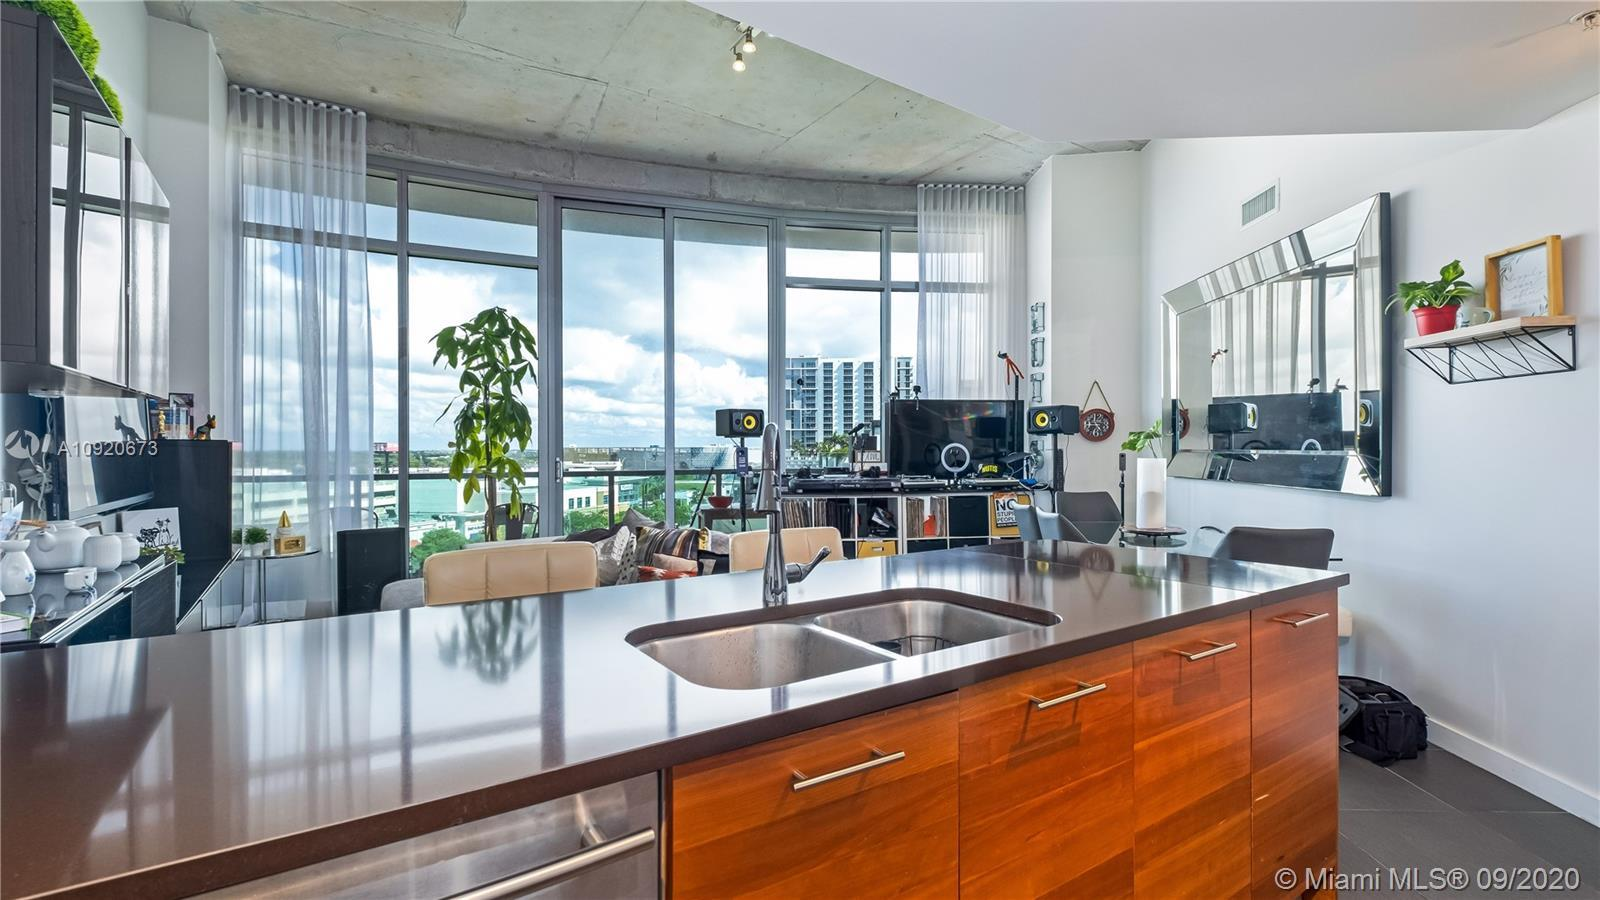 Amazing bright corner unit at Midtown 4, 2 bedrooms / 2 bathrooms with very high ceilings and expens